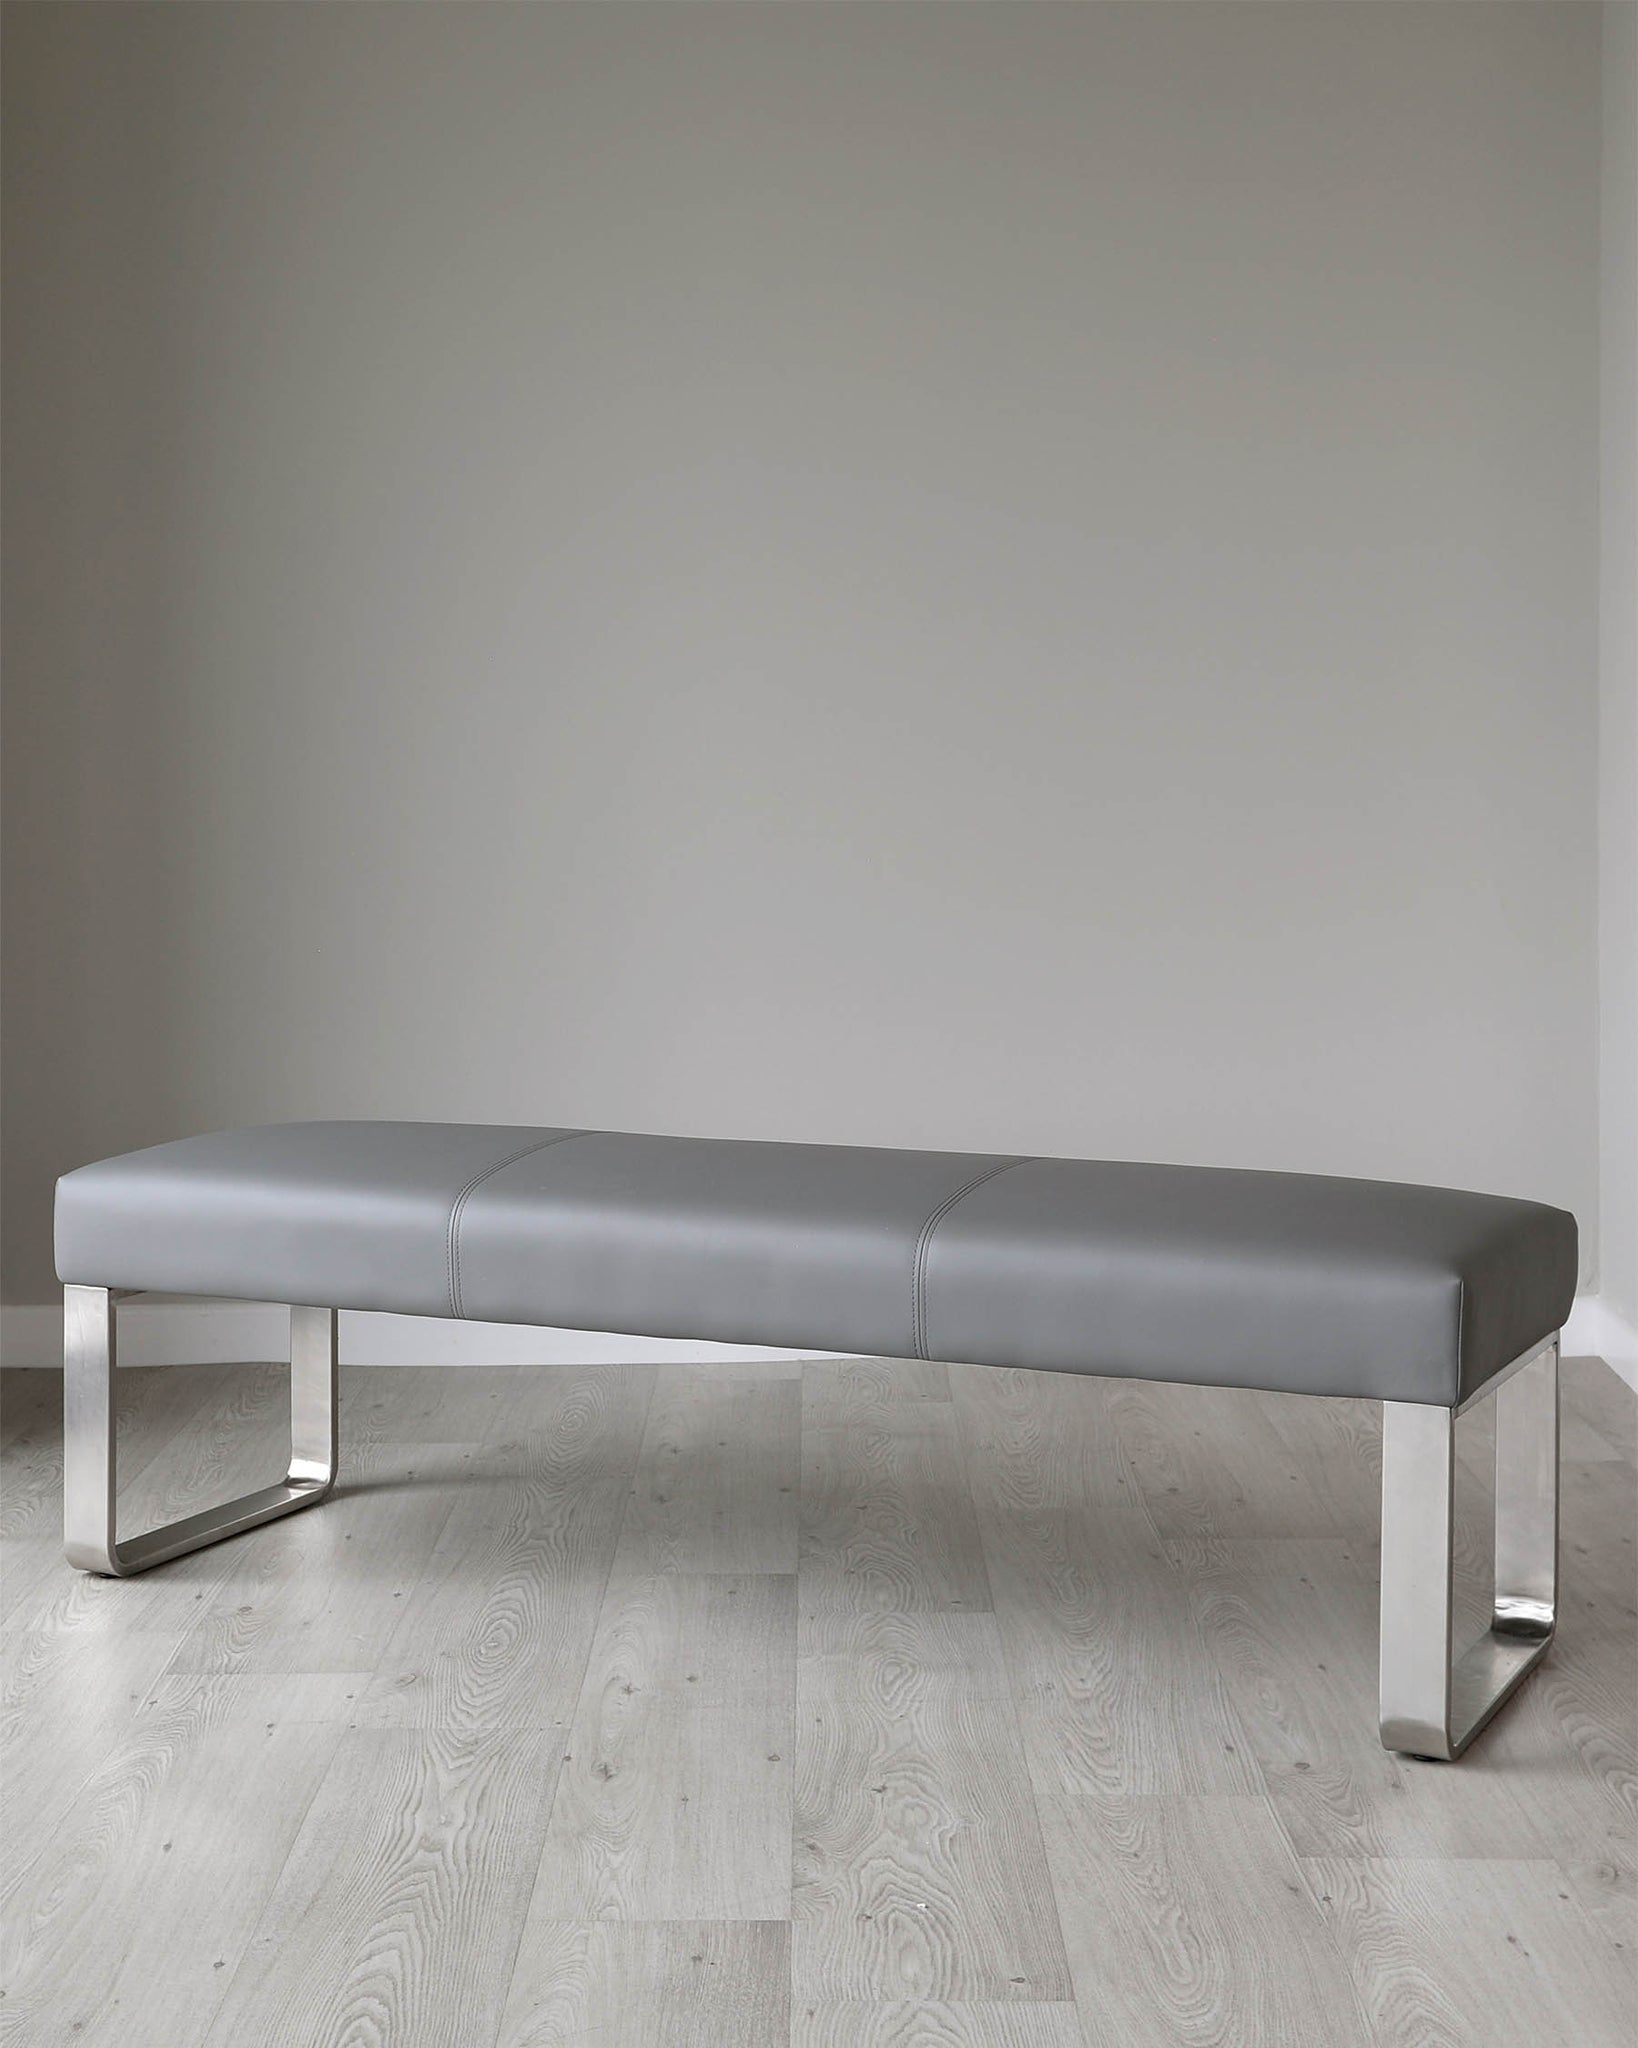 Loop 3 Seater Grey Faux Leather & Stainless Steel Bench Without Backrest